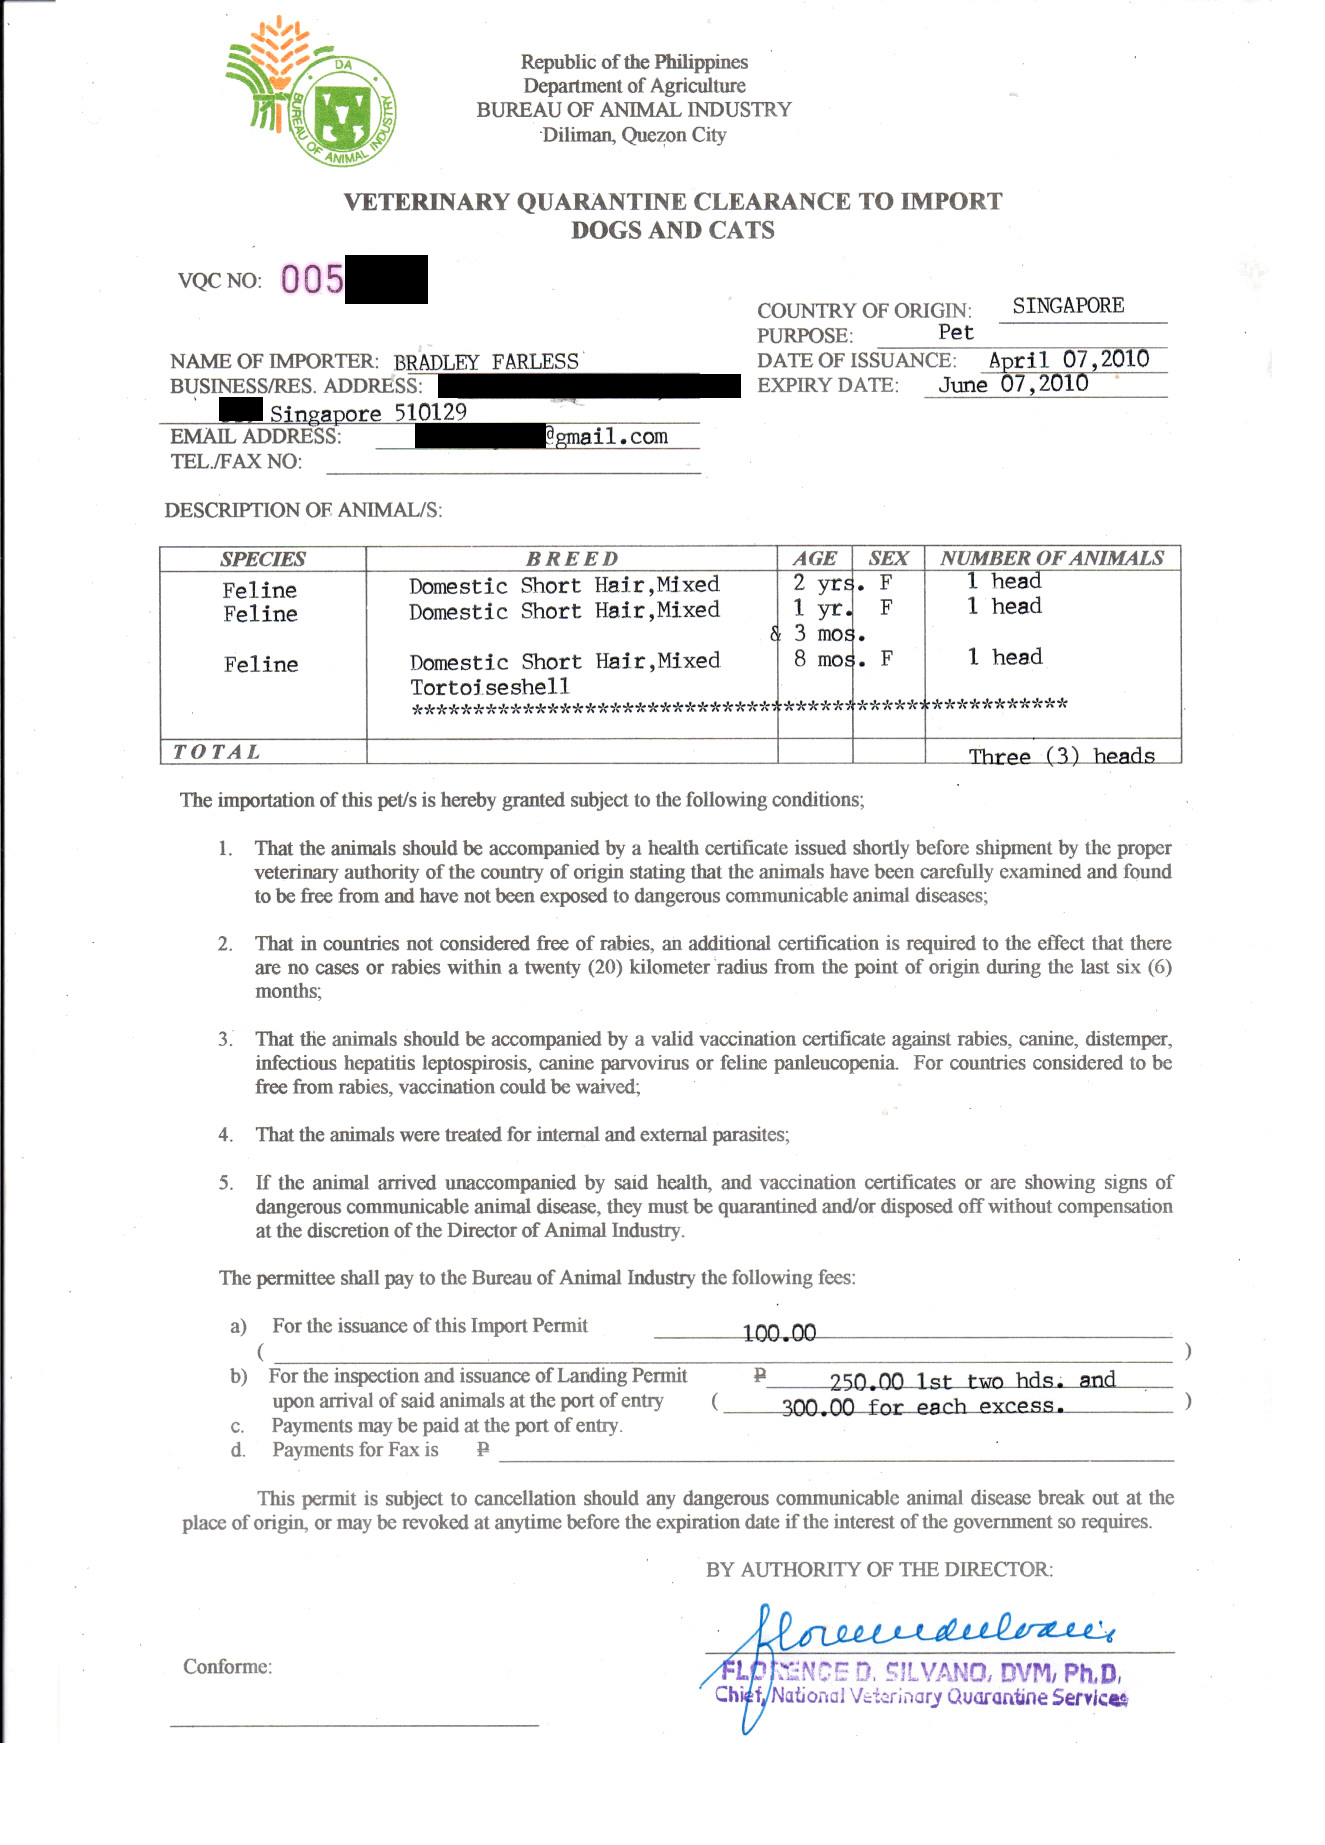 Republic of the Philippines Veterinary Quarantine Clearance to Import Dogs and Cats (List of Requirements for Importing Cats and Dogs Included in Document)